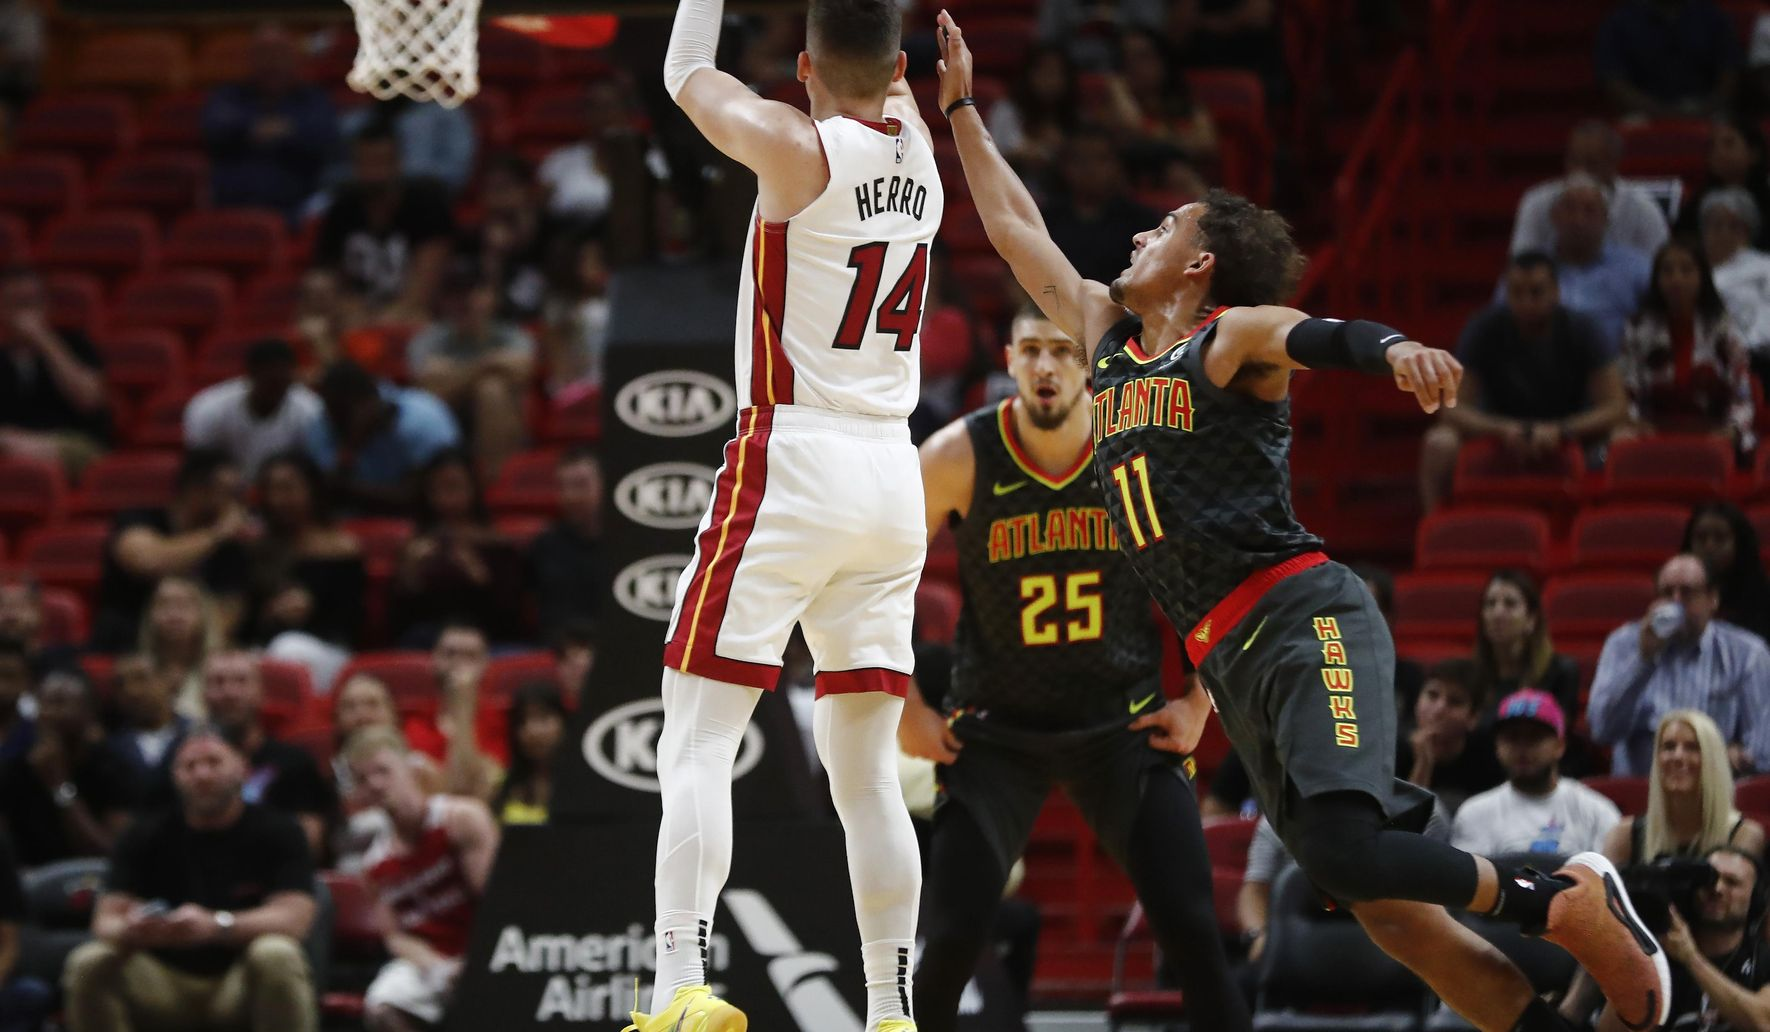 Hawks_heat_basketball_56472_c0-472-4203-2922_s1770x1032